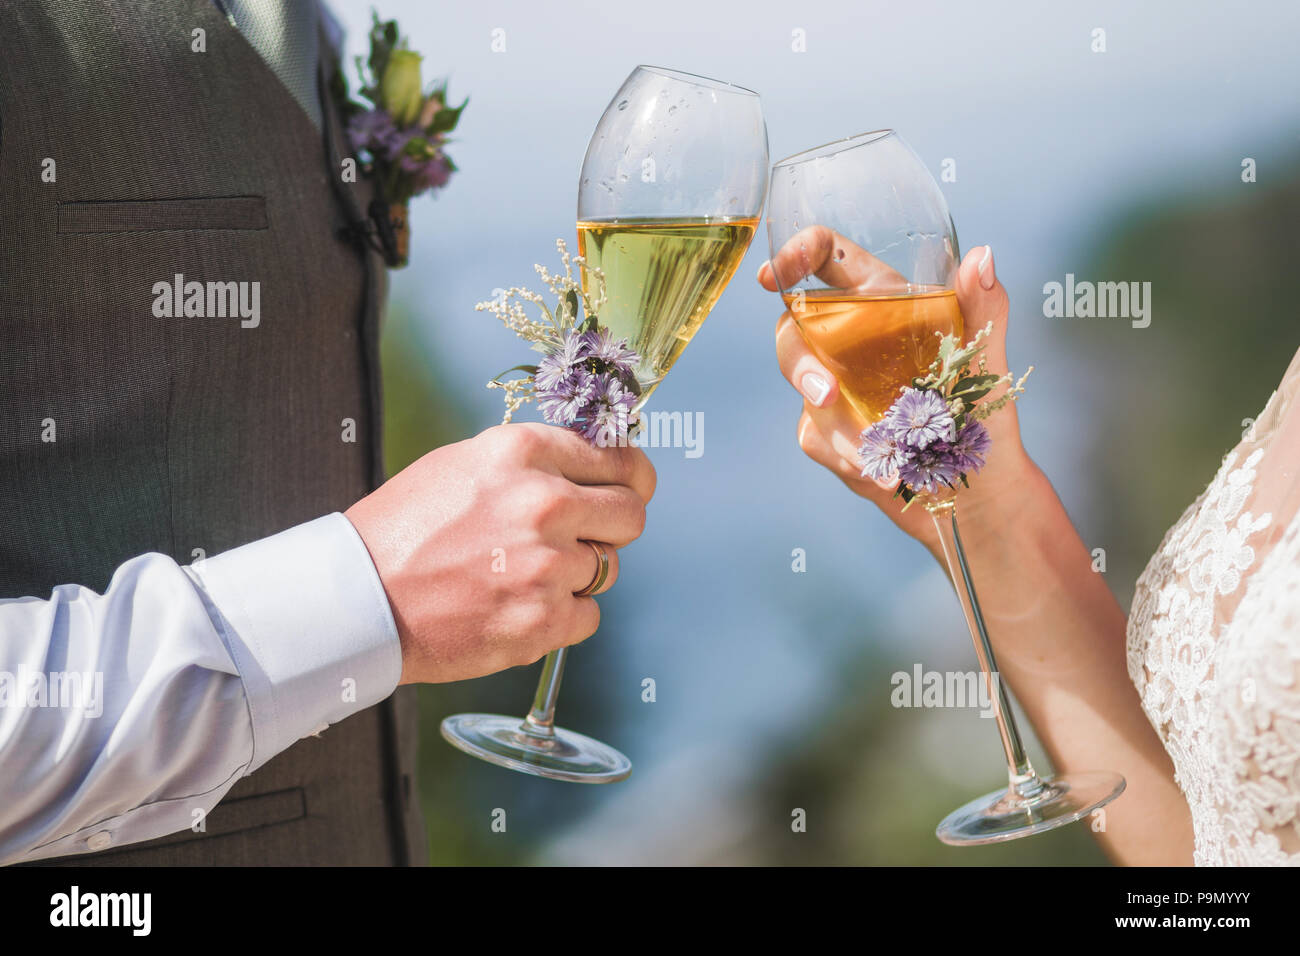 Man and woman hands holding two champagne glasses decorated with flowers for wedding ceremony - Stock Image